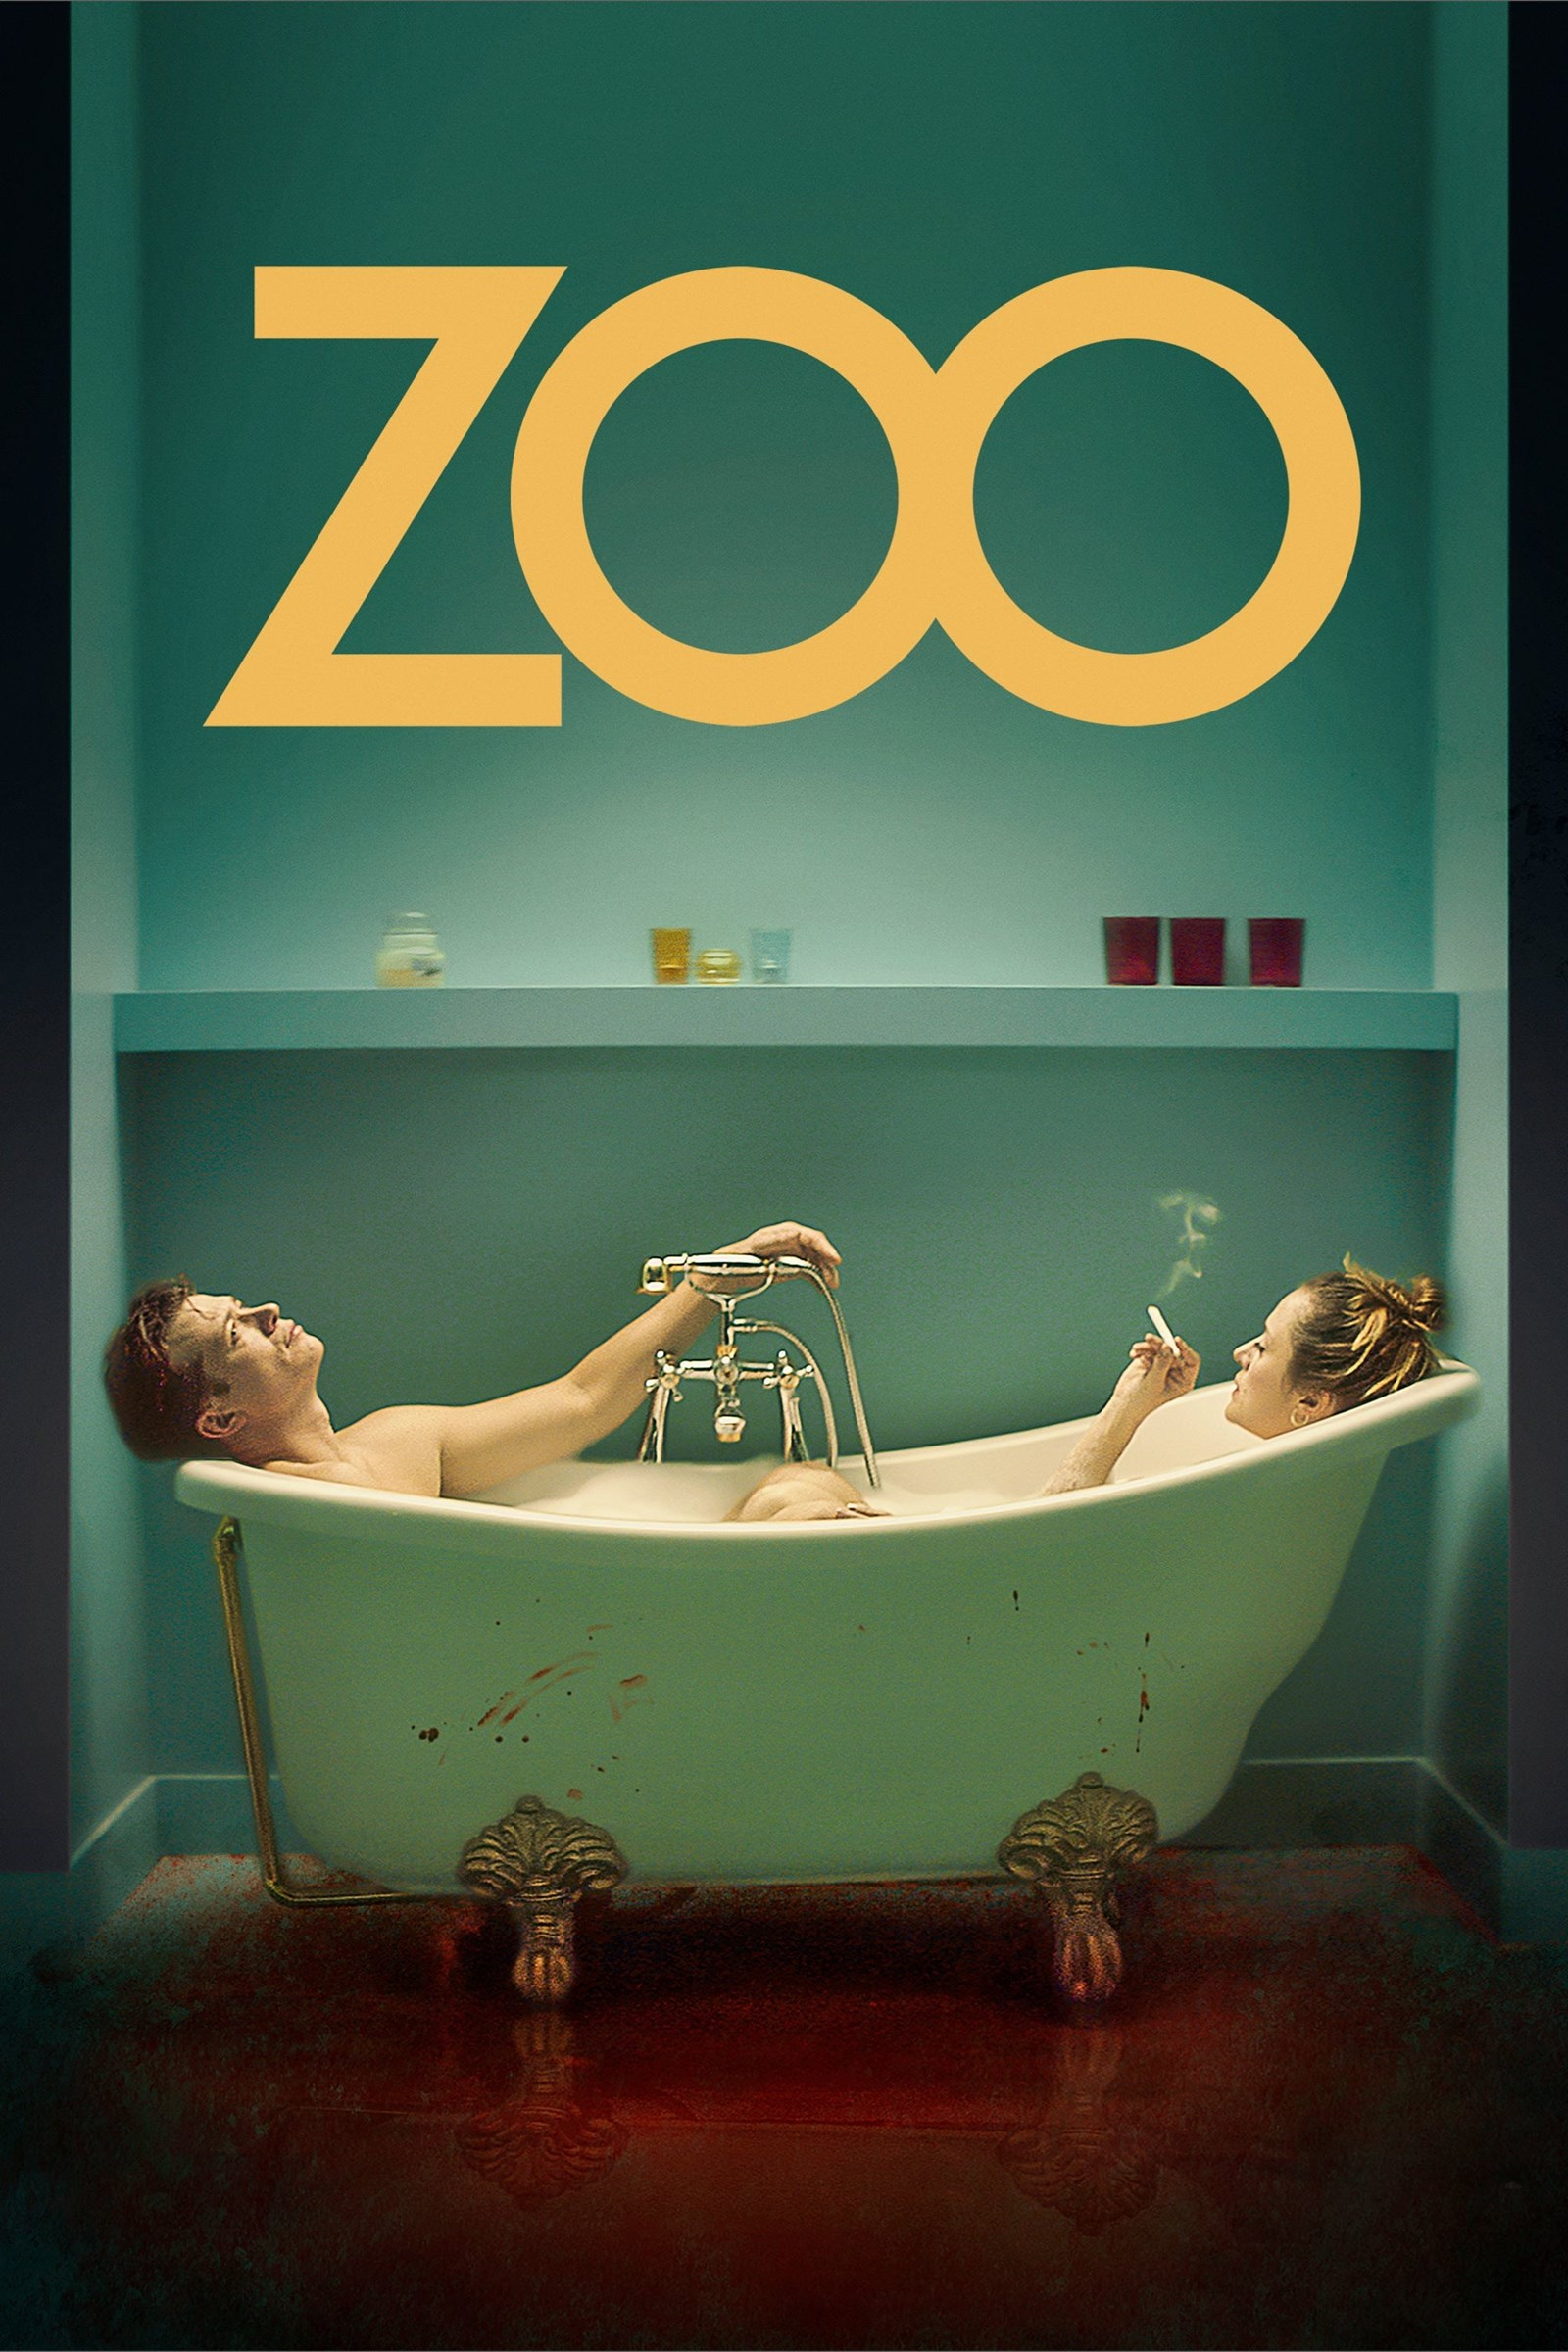 Subscene - Subtitles for Zoo